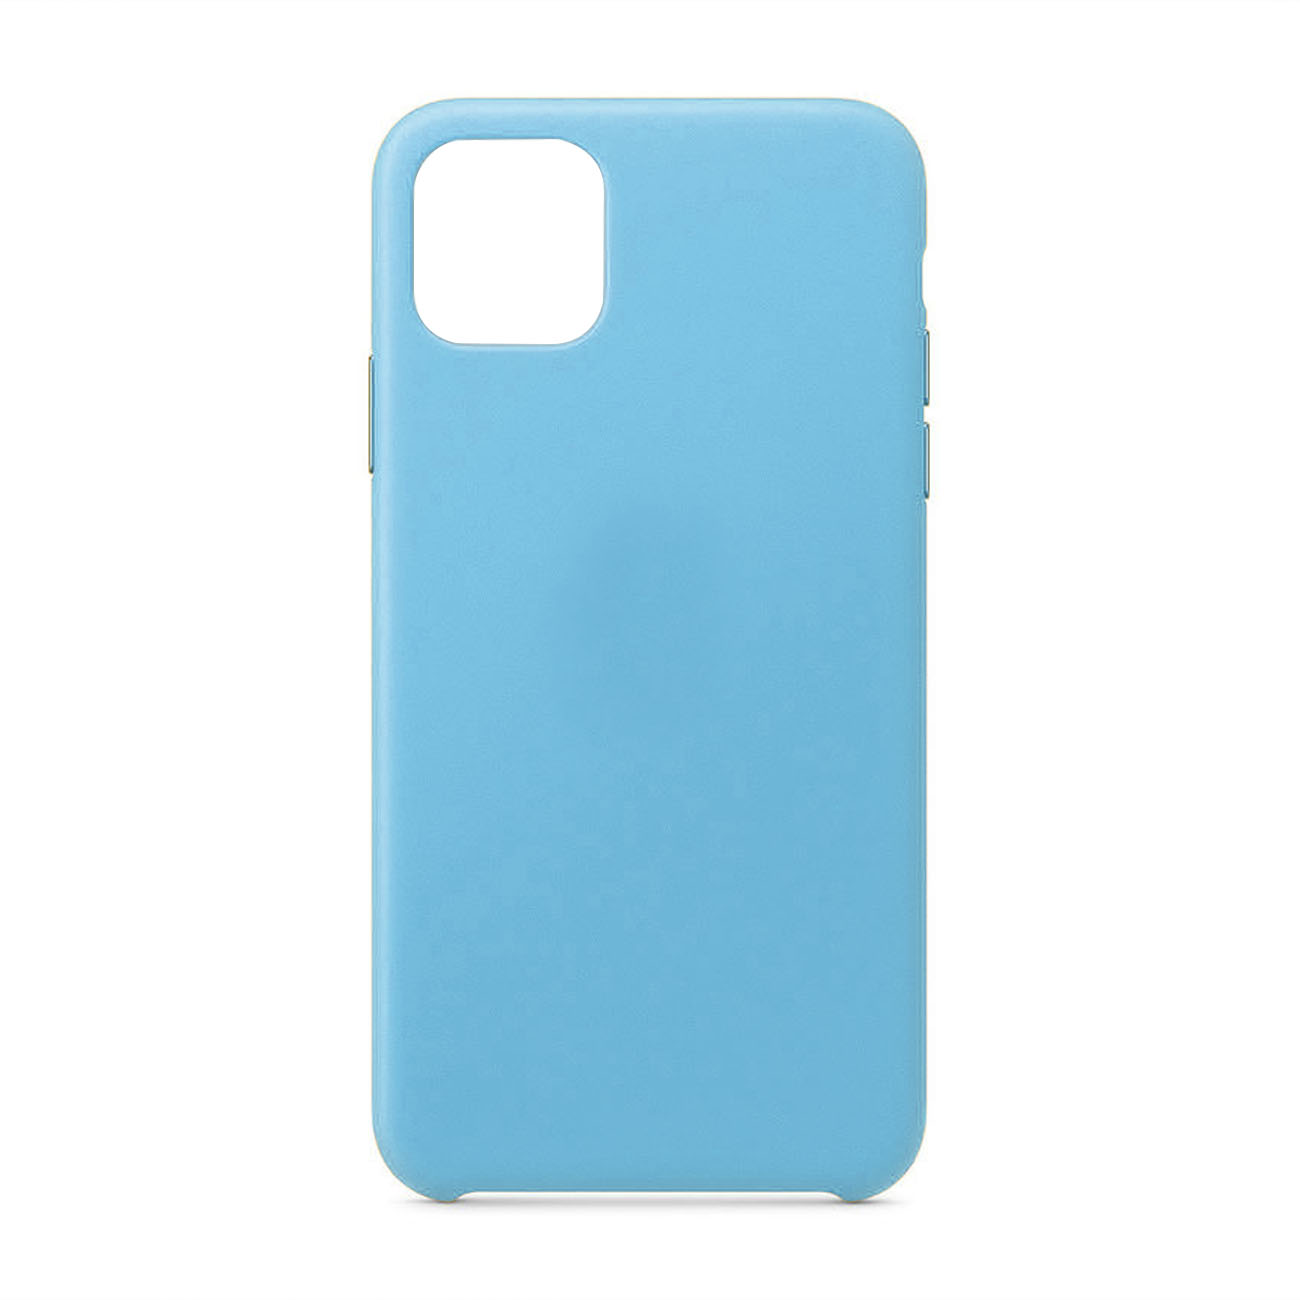 Apple iPhone 11 Pro Gummy Cases In Blue